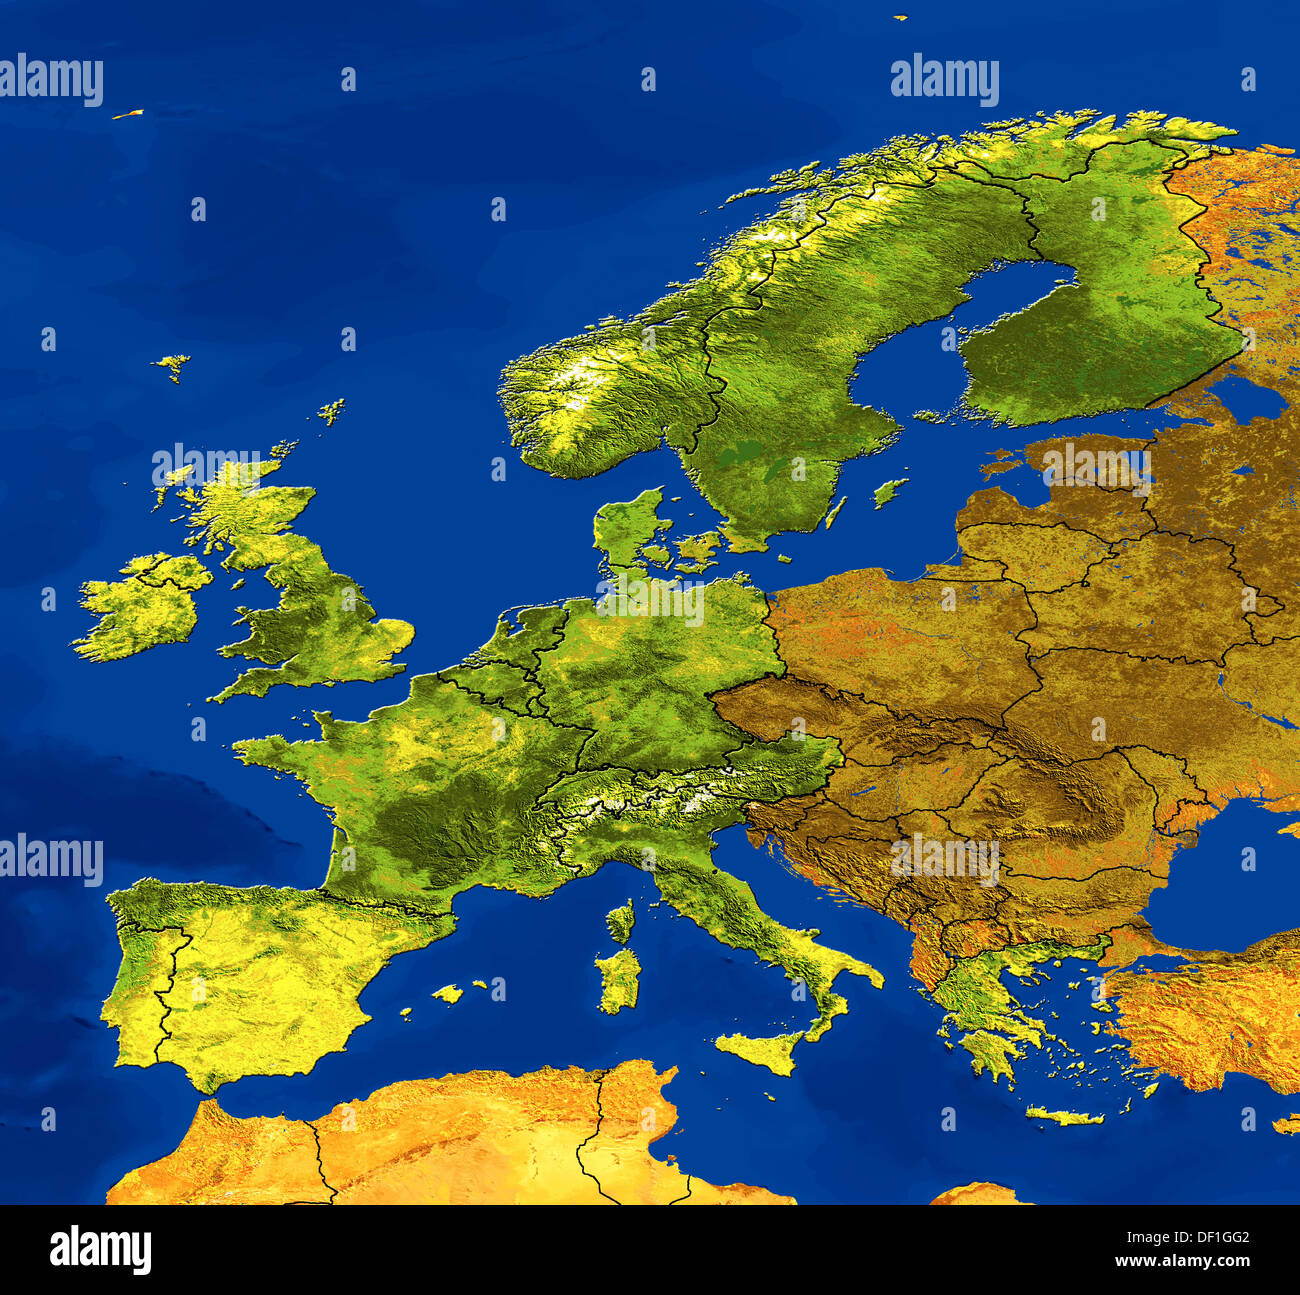 Satellite Image Map Of Europe Showing Borders And Topographic – Globe Map of Europe